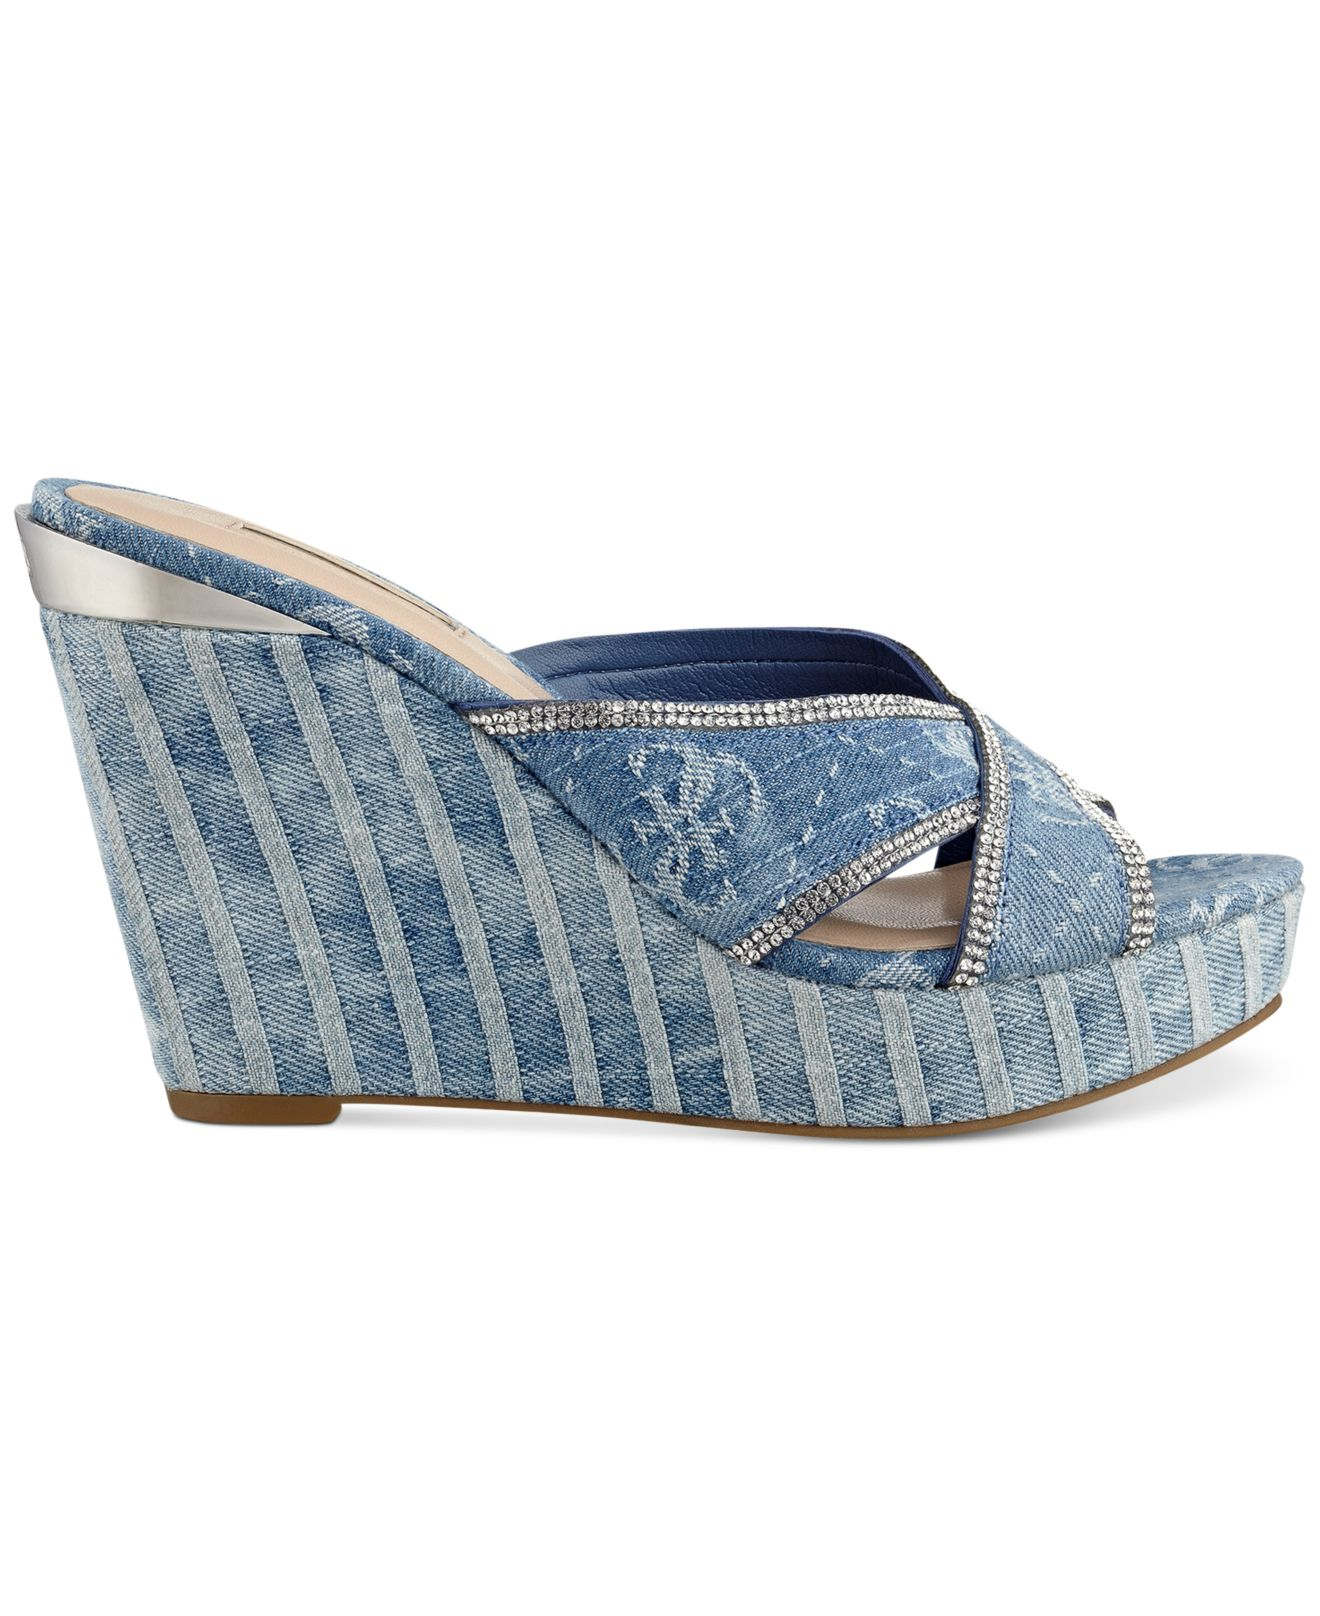 1d2570bf493 Lyst - Guess Eleonora Platform Wedge Slide Sandals in Blue